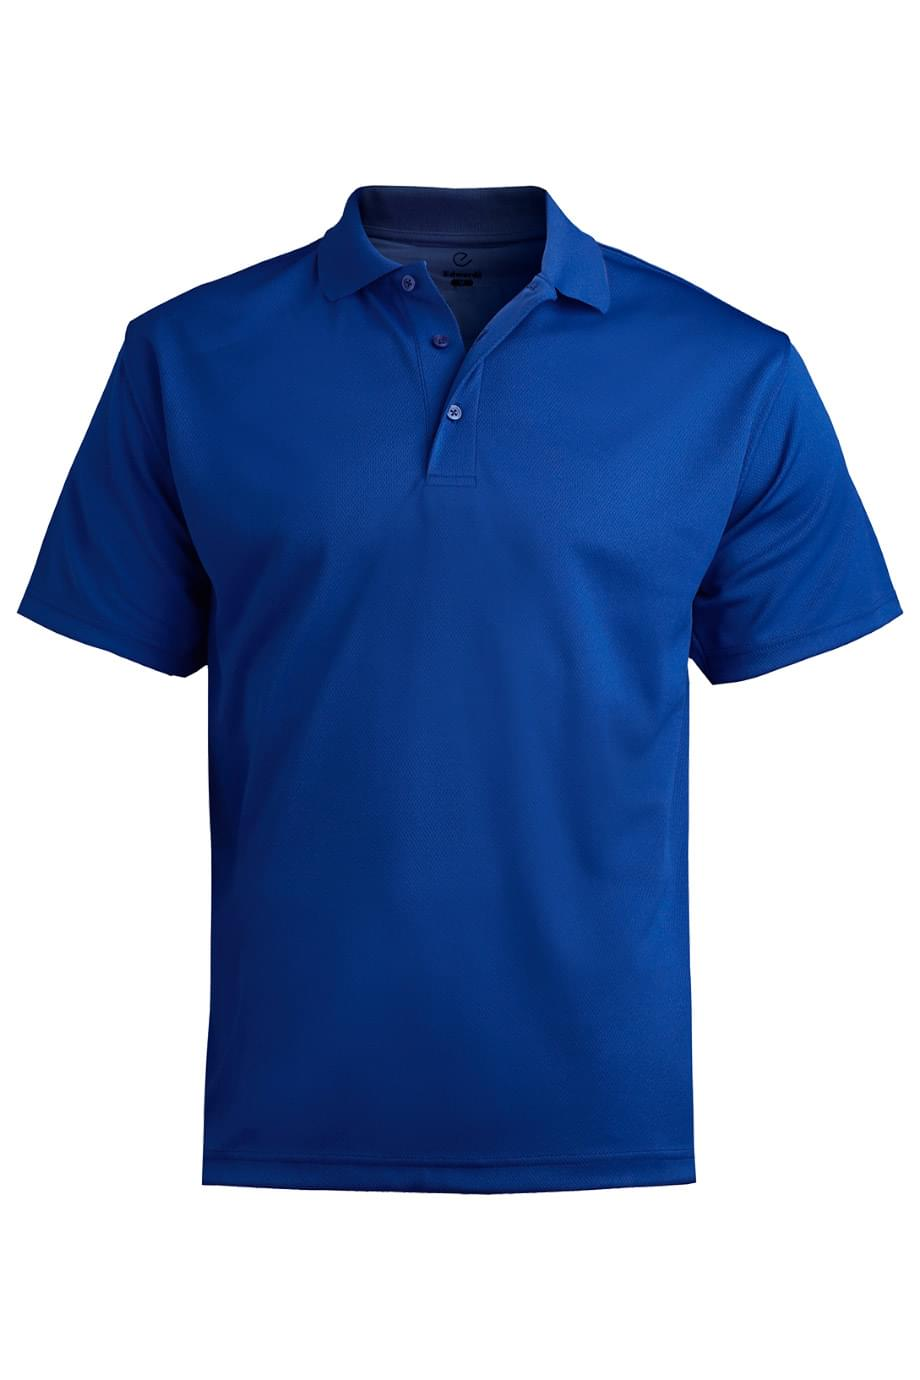 HI-PERFORMANCE MESH POLO